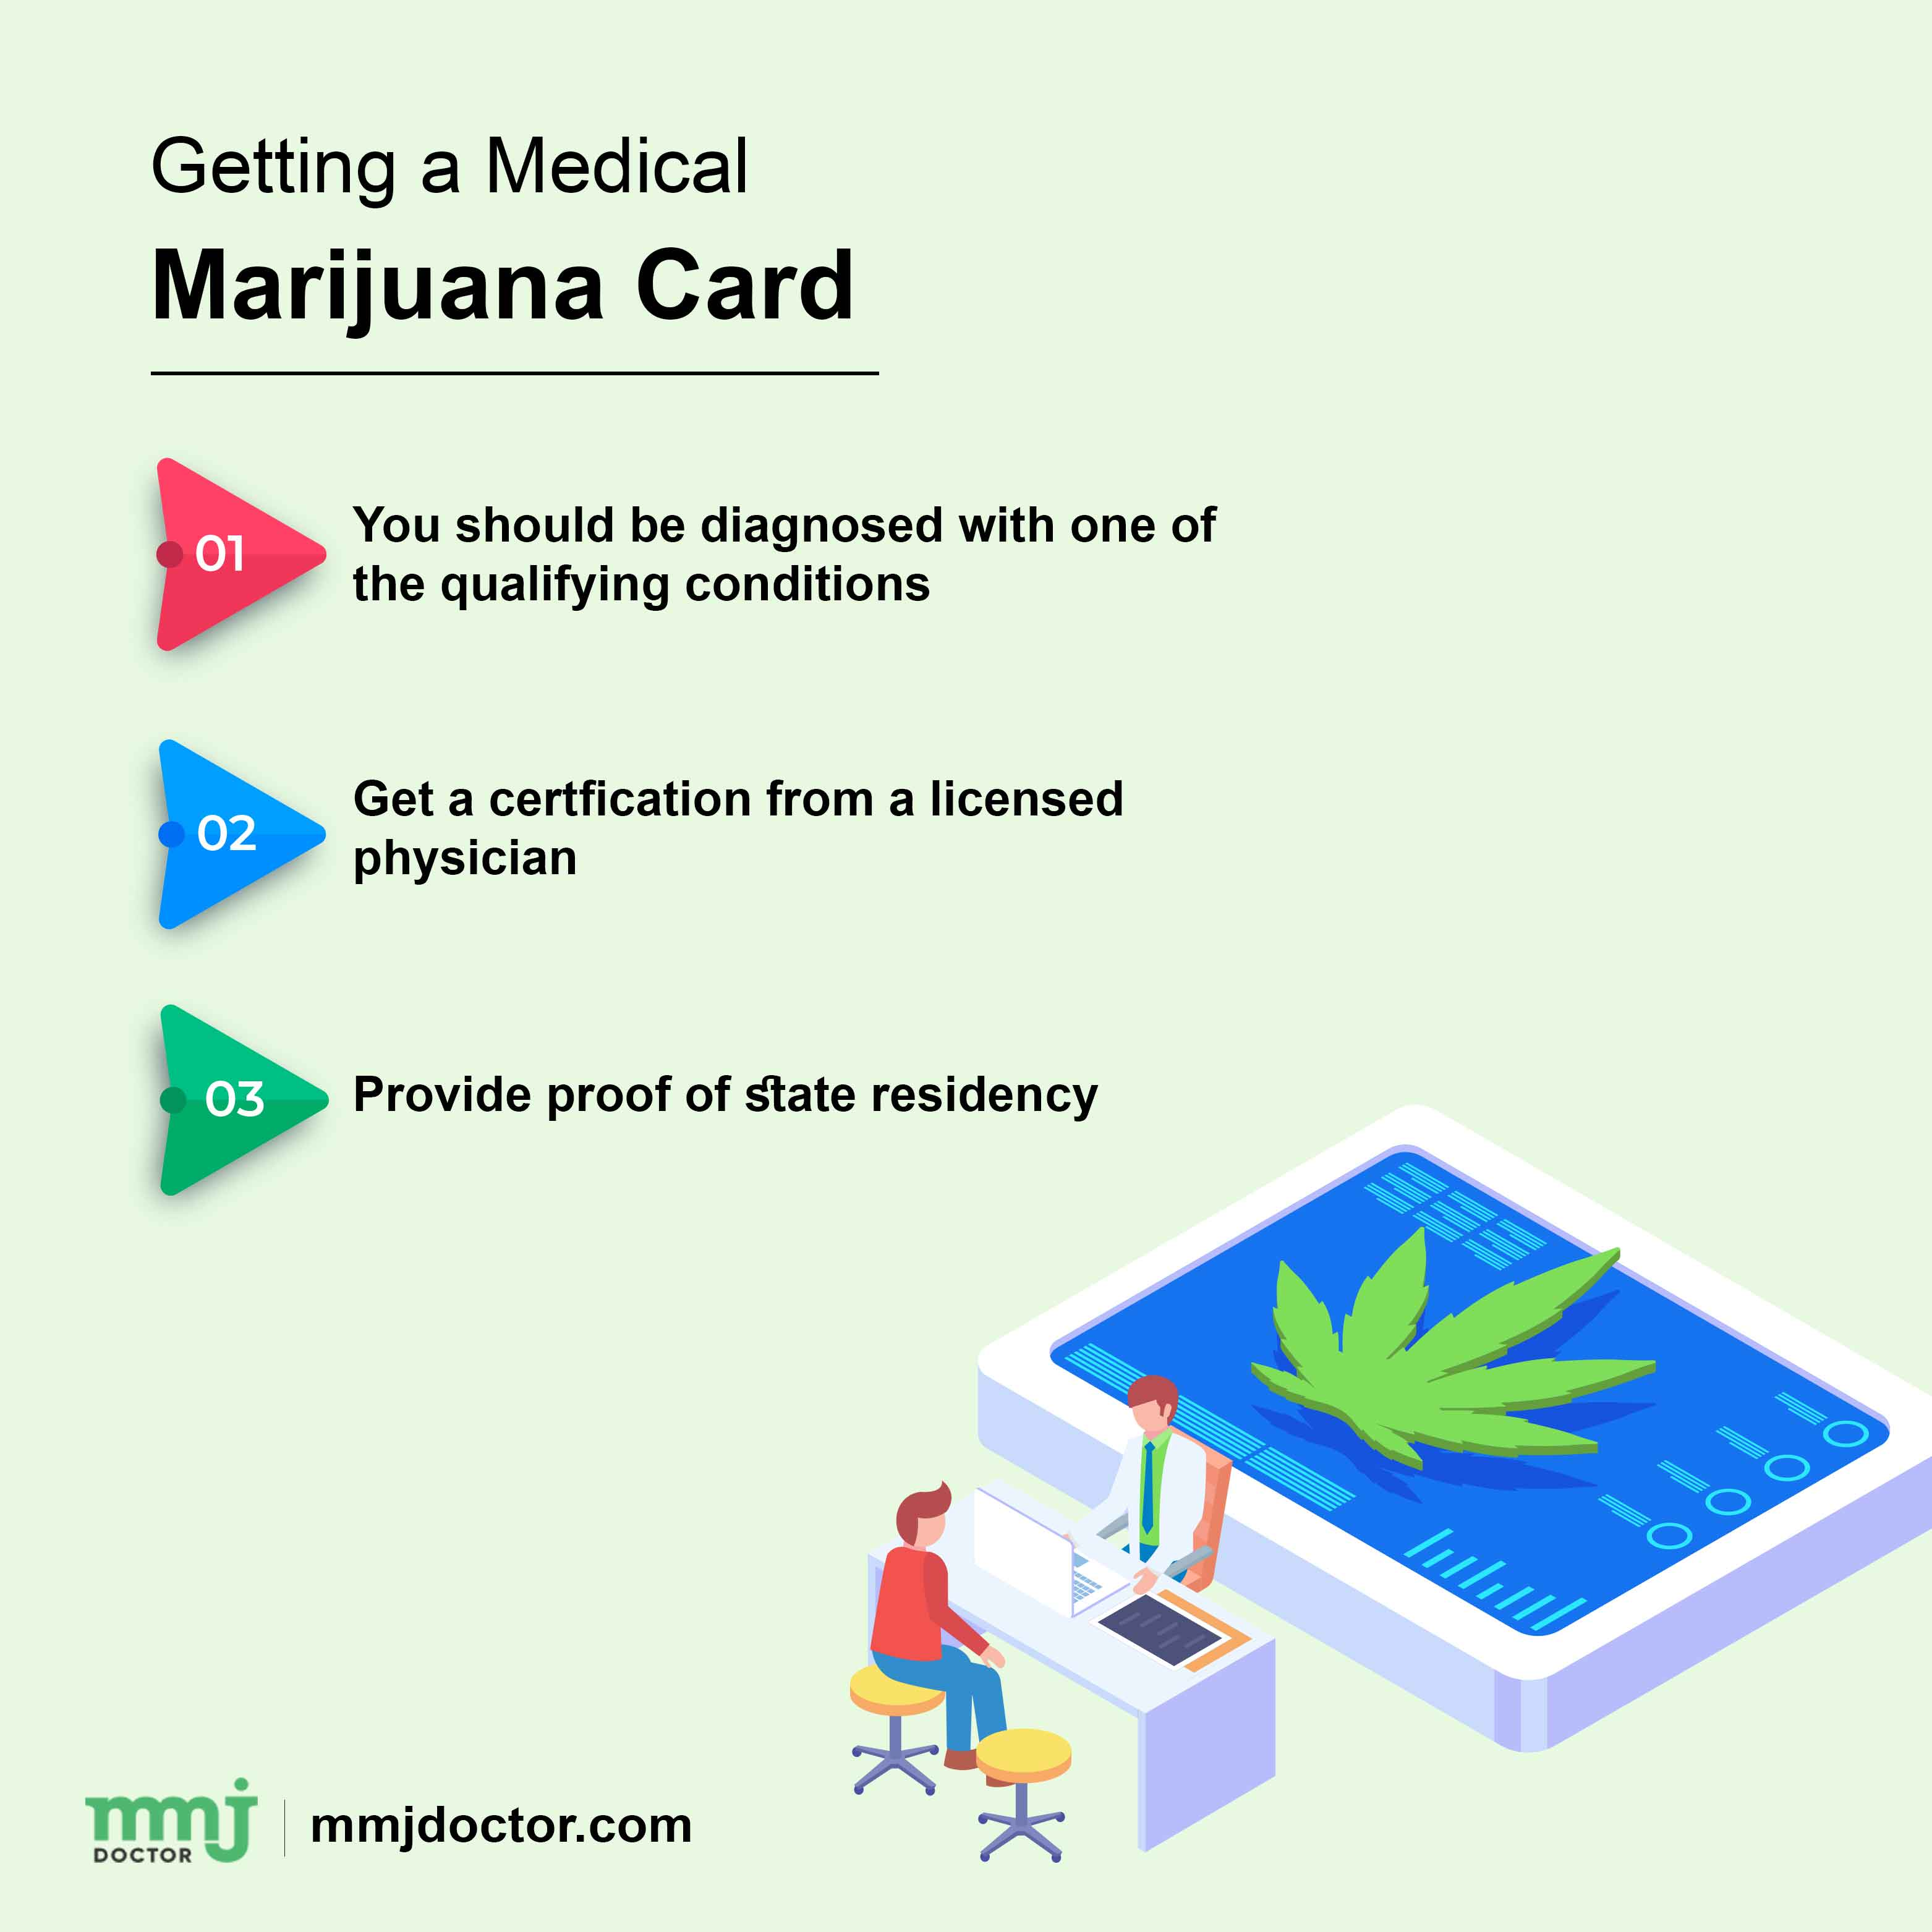 4 Things To Avoid When Getting A Medical Marijuana Card In New York